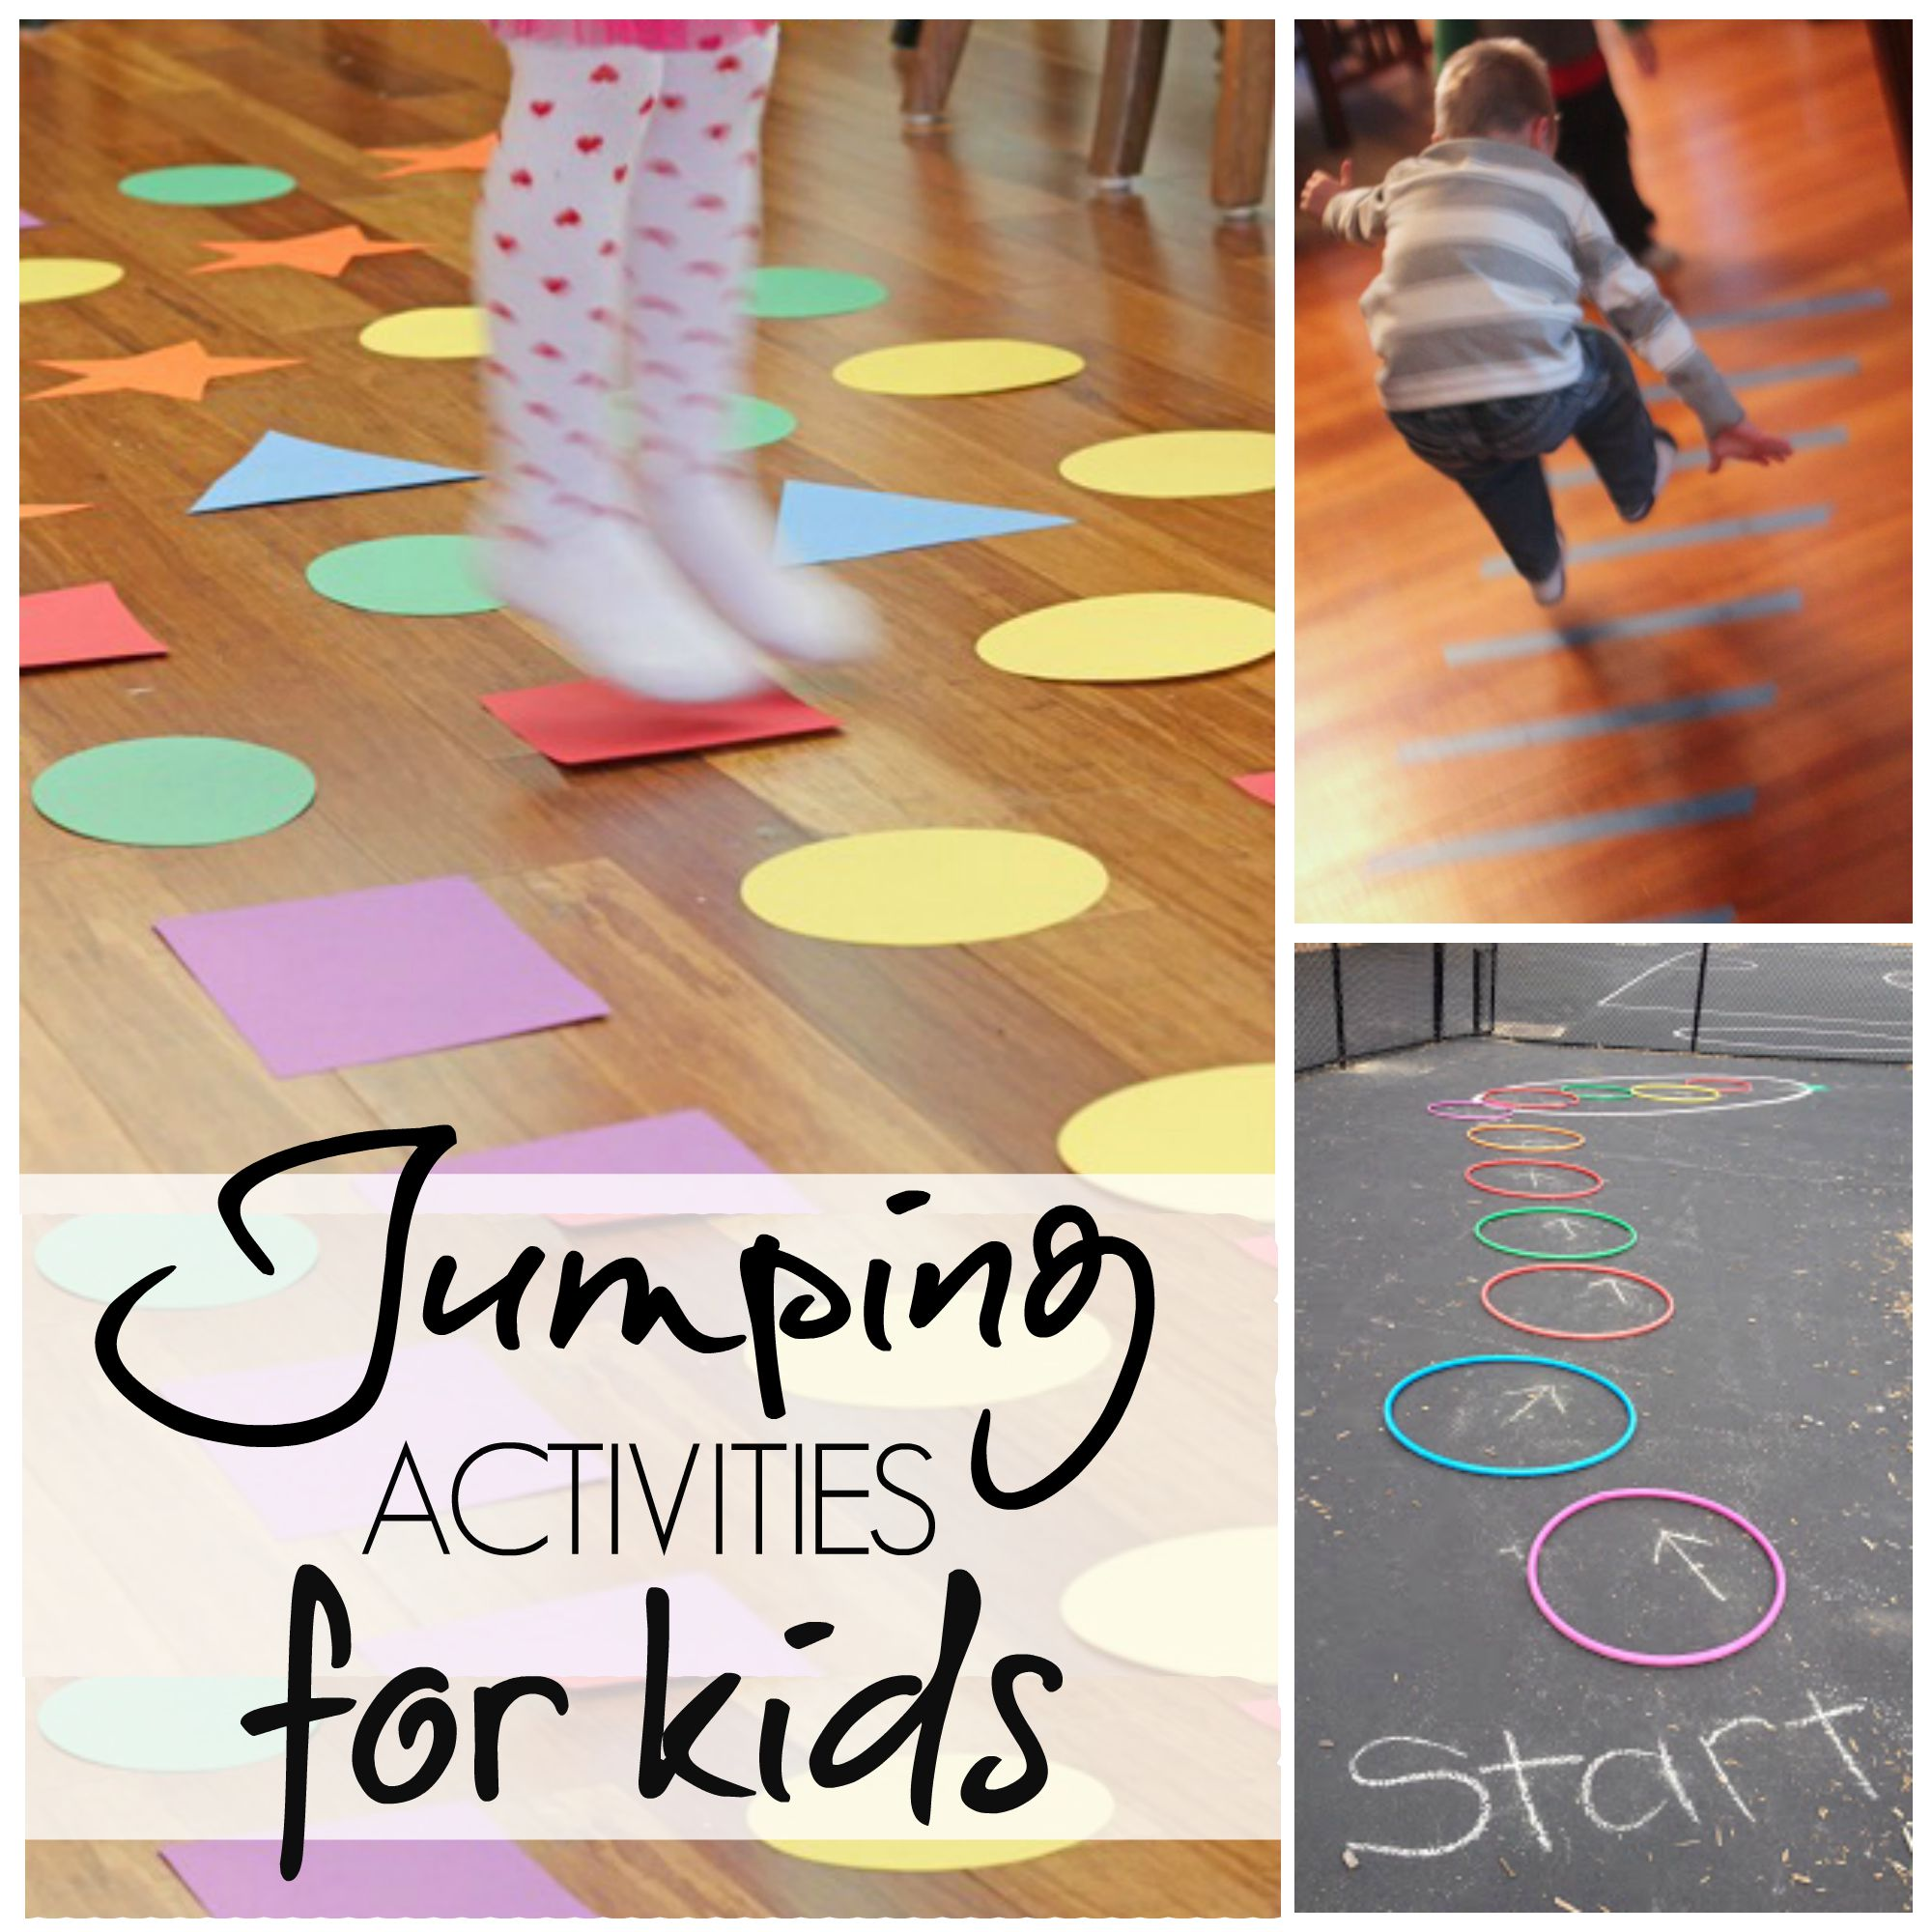 10 Jumping Activities For Kids